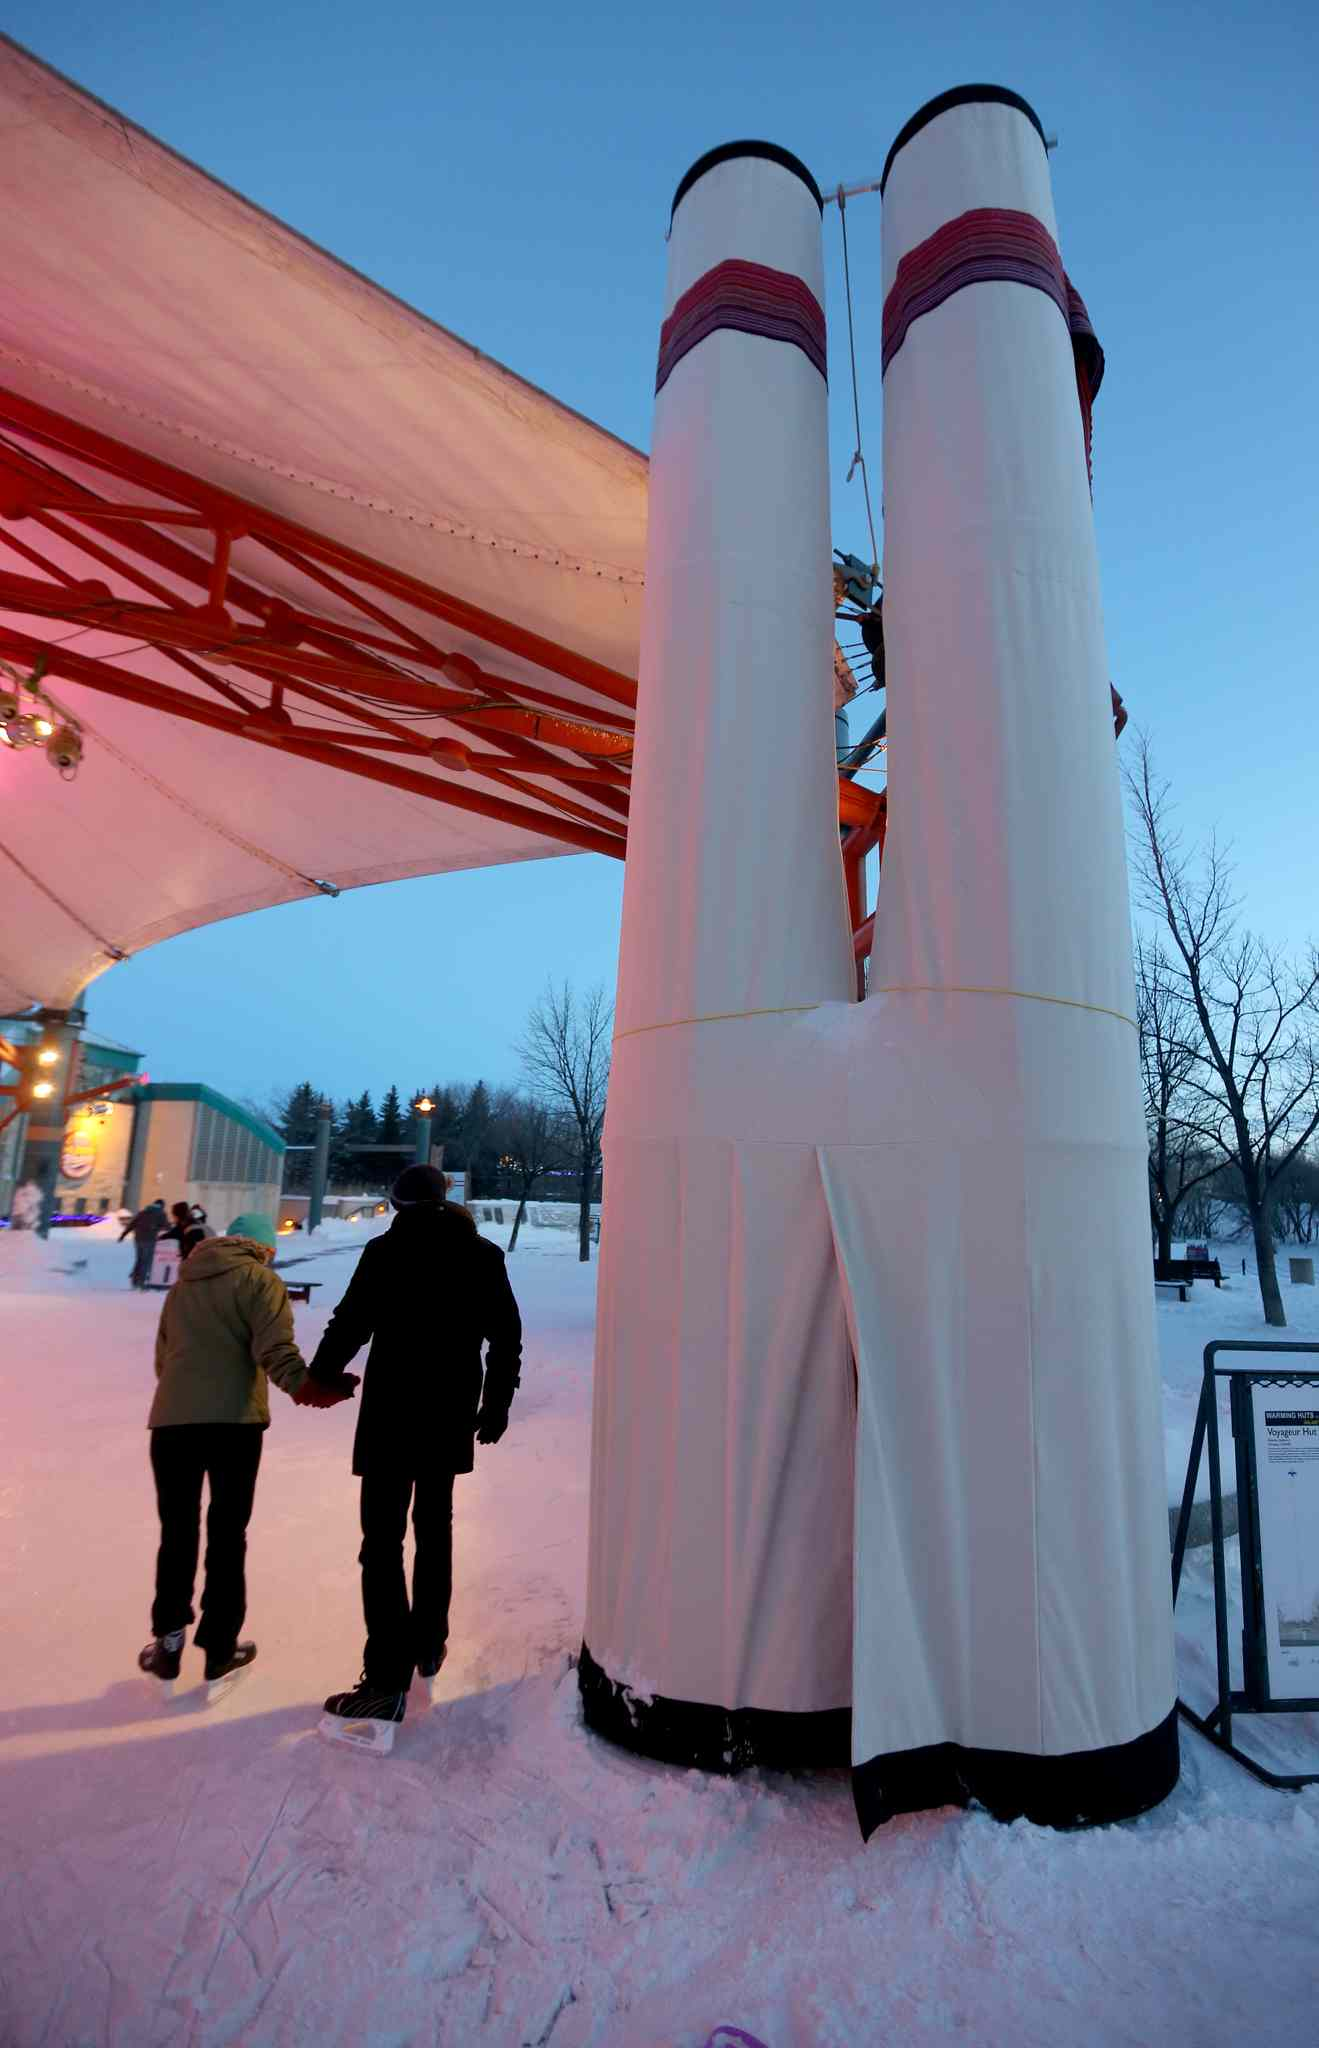 The Voyageur Hut, designed by Etienne Gabourie, sits on display for visitors at The Forks on Friday.